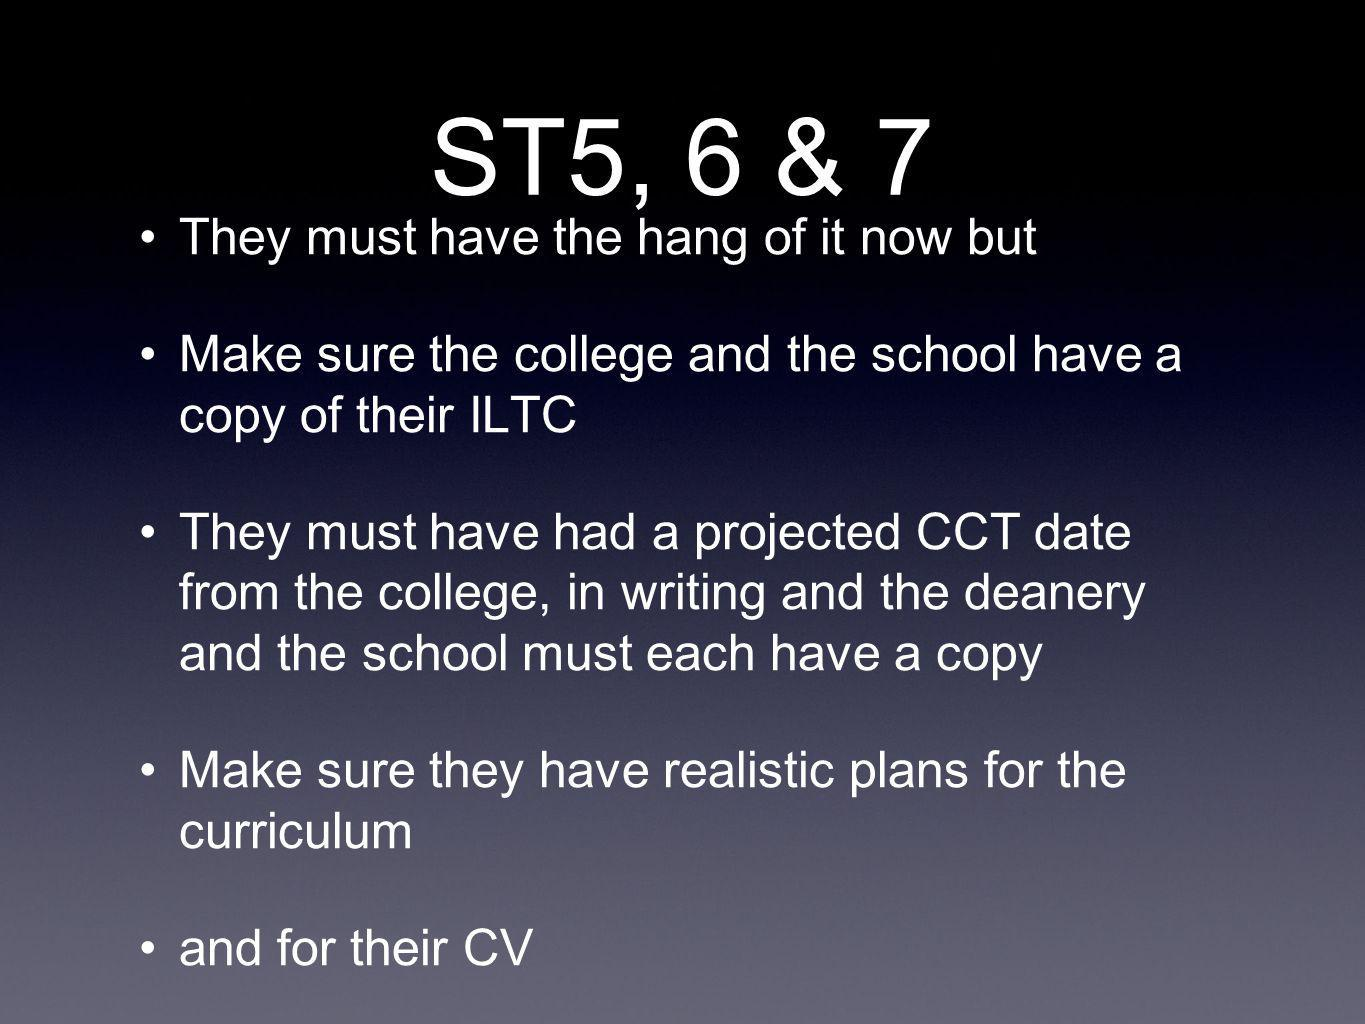 ST5, 6 & 7 They must have the hang of it now but Make sure the college and the school have a copy of their ILTC They must have had a projected CCT dat